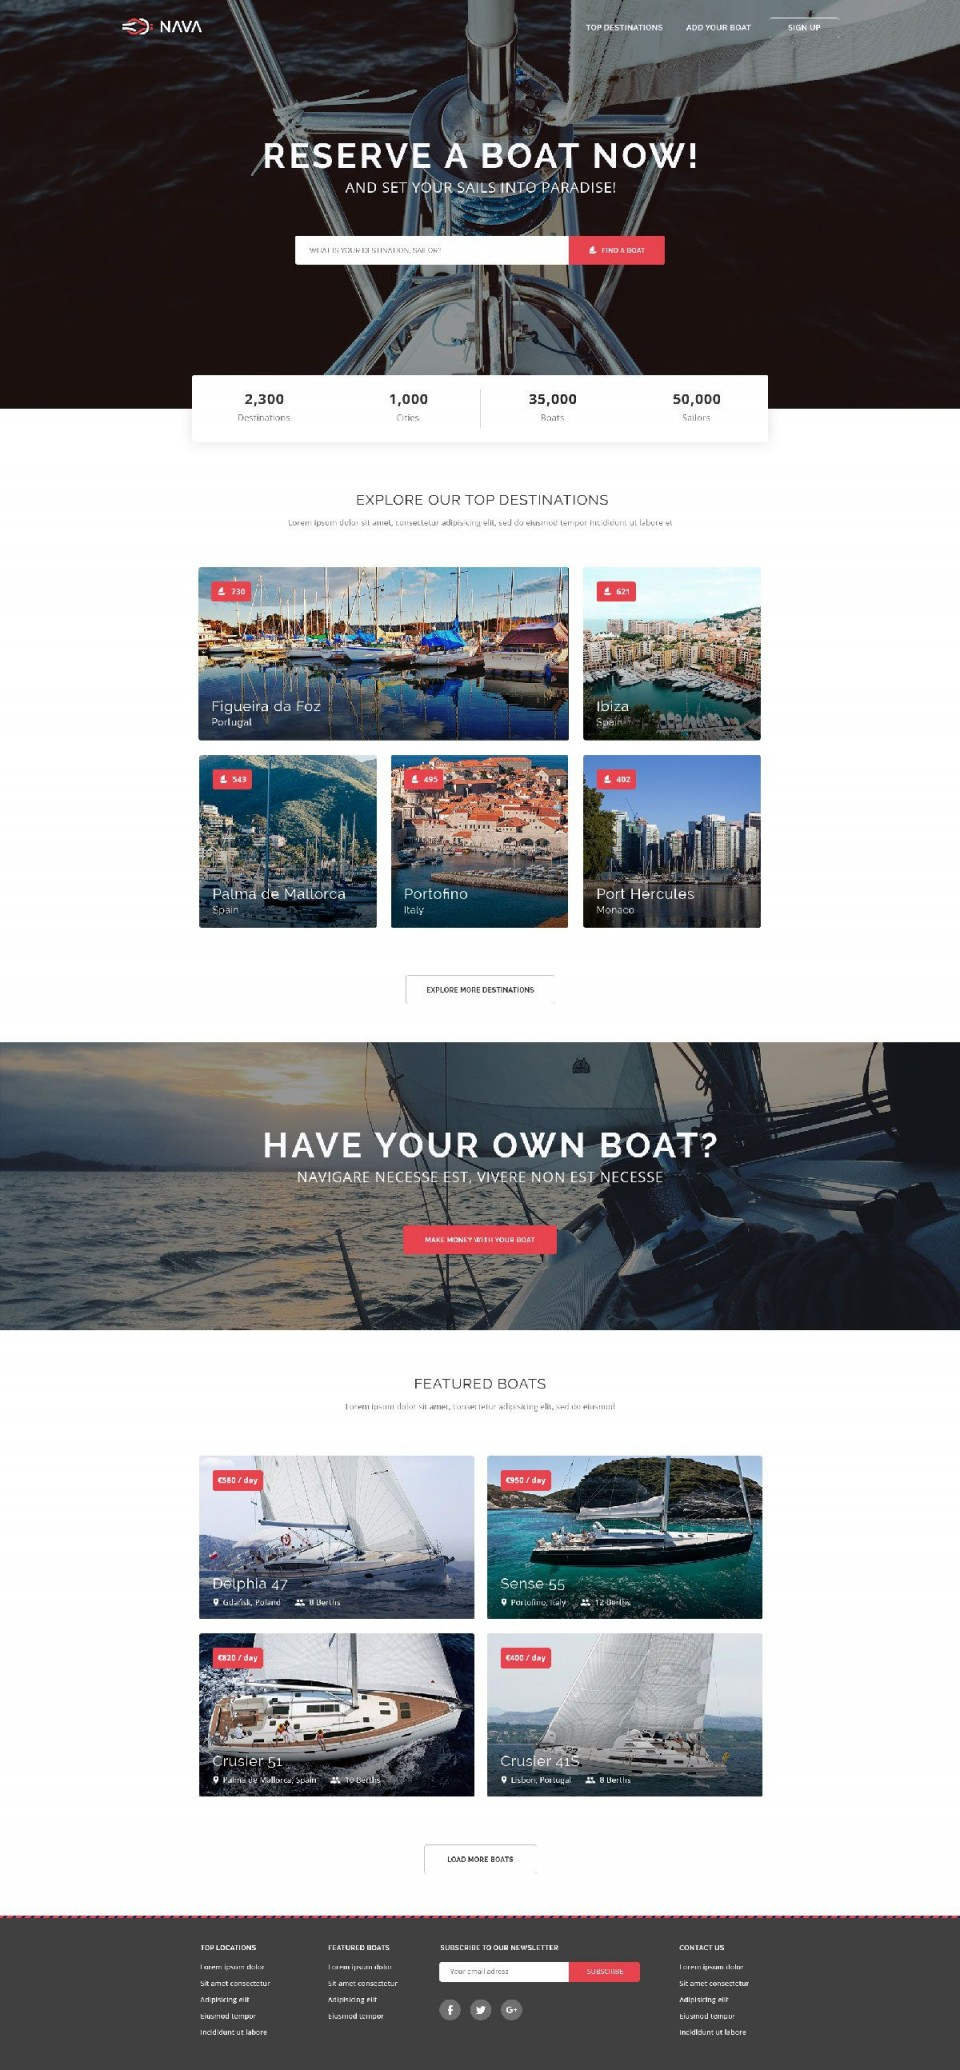 006 Remarkable One Page Website Template Psd Free Download Idea 960